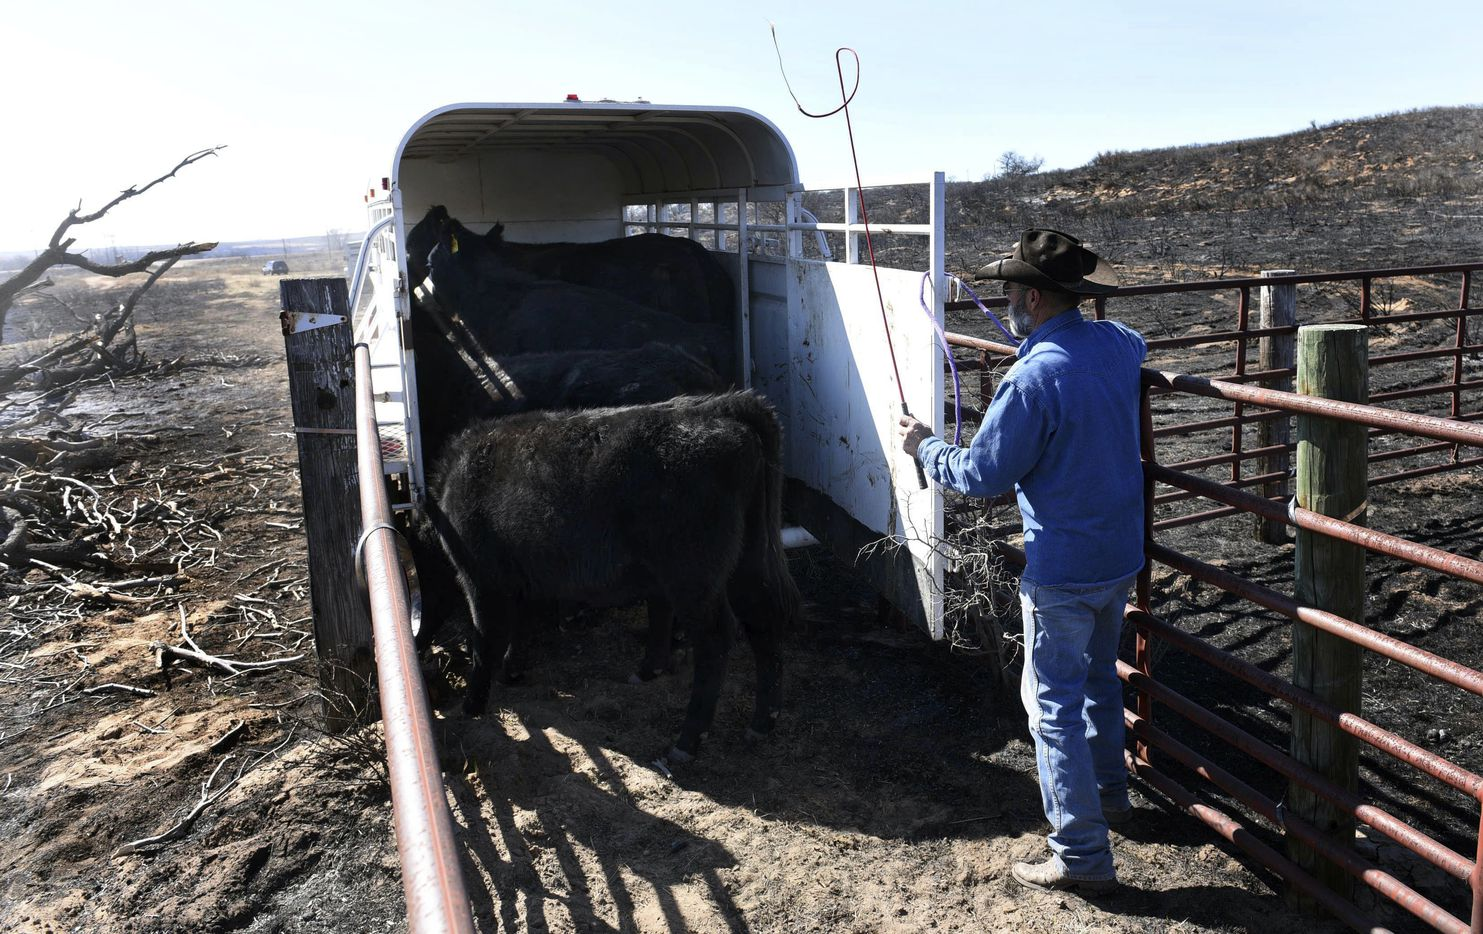 Gray County rancher Ron Ferguson works to load cattle. Ferguson said he lost between 12 and 14 head of cattle in the fires, including several newborn calves. (Michael Schumacher/Amarillo Globe-News)